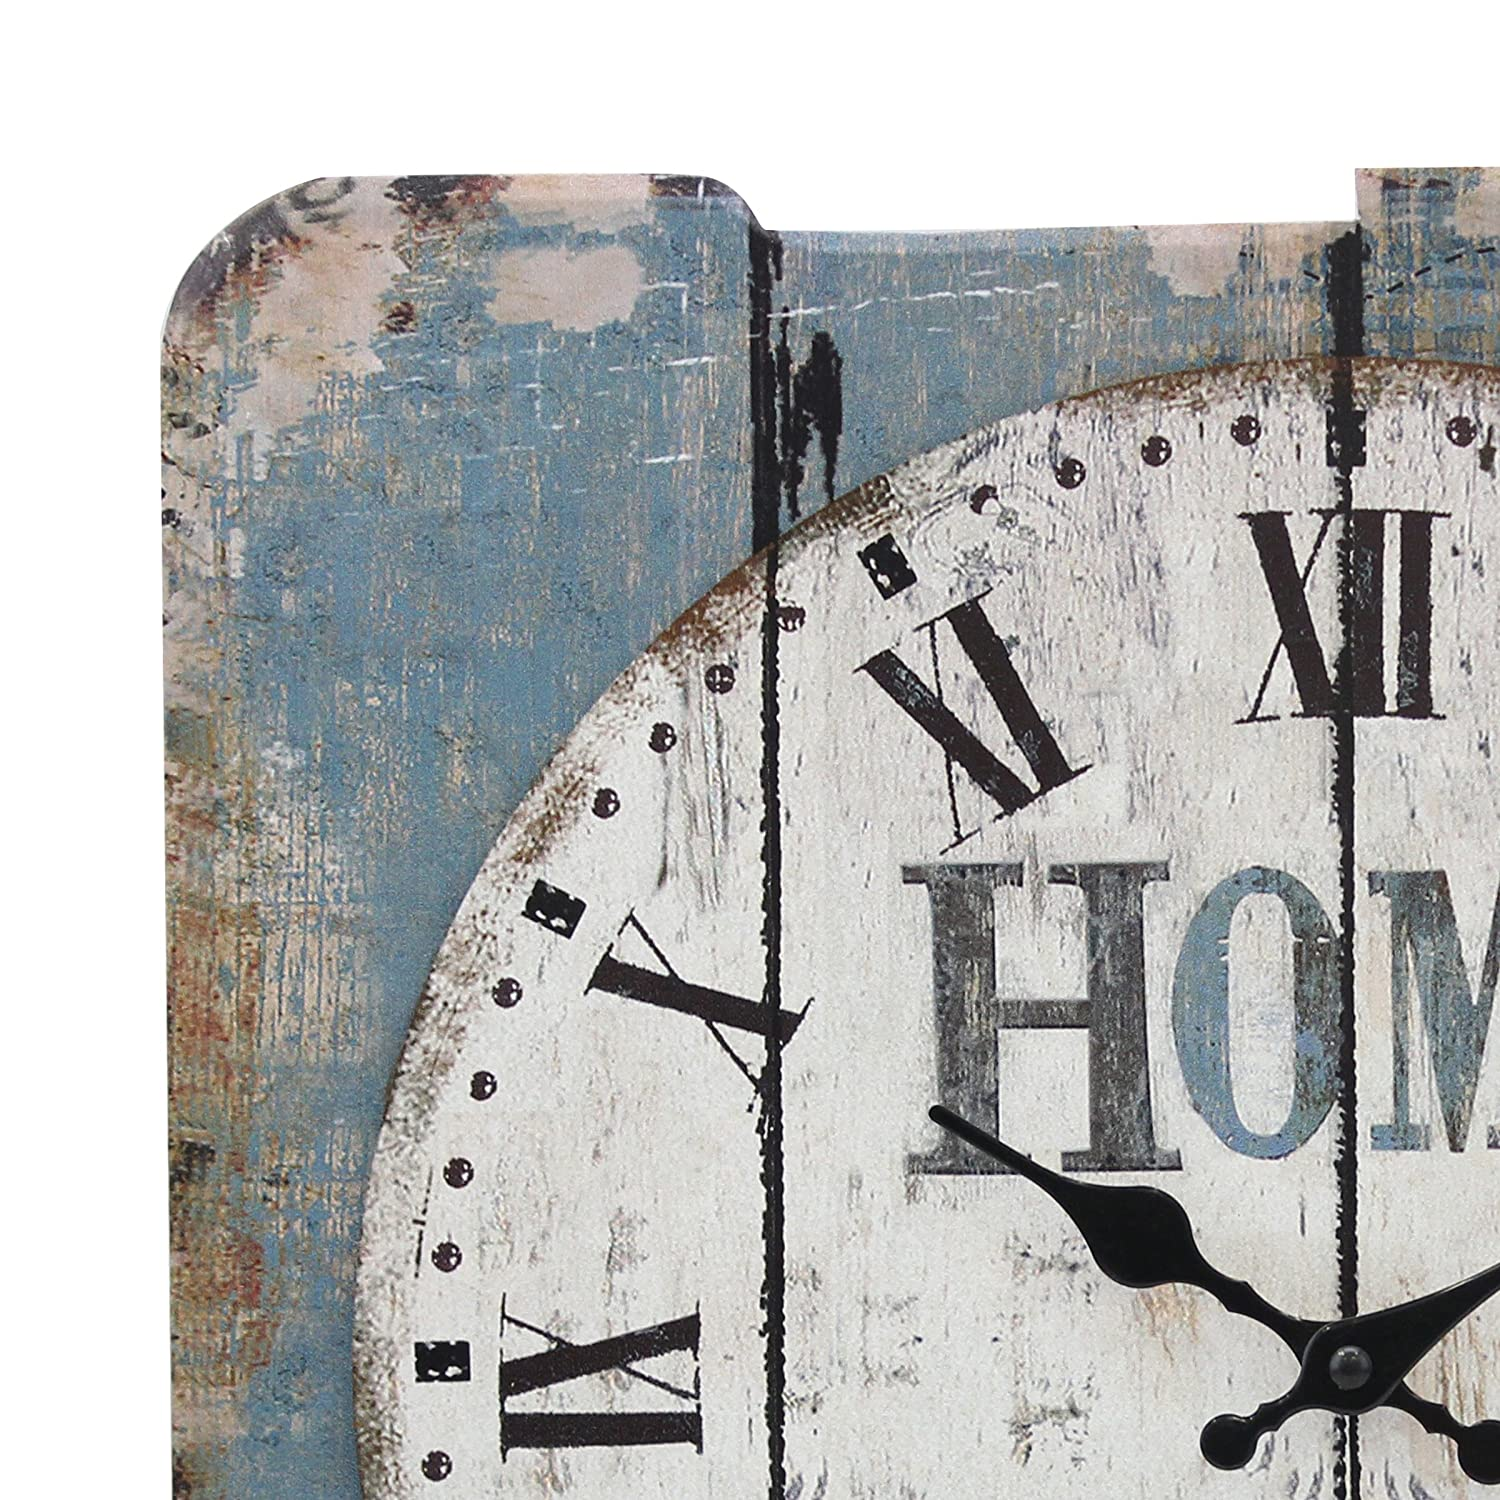 Stonebriar Square 15 Rustic Farmhouse Worn Blue and White Roman Numeral Wall Clock Shabby Chic and DIY Home Decor Accents for the Kitchen and Bedroom Living Room Battery Operated CKK Home Décor SB-6158A